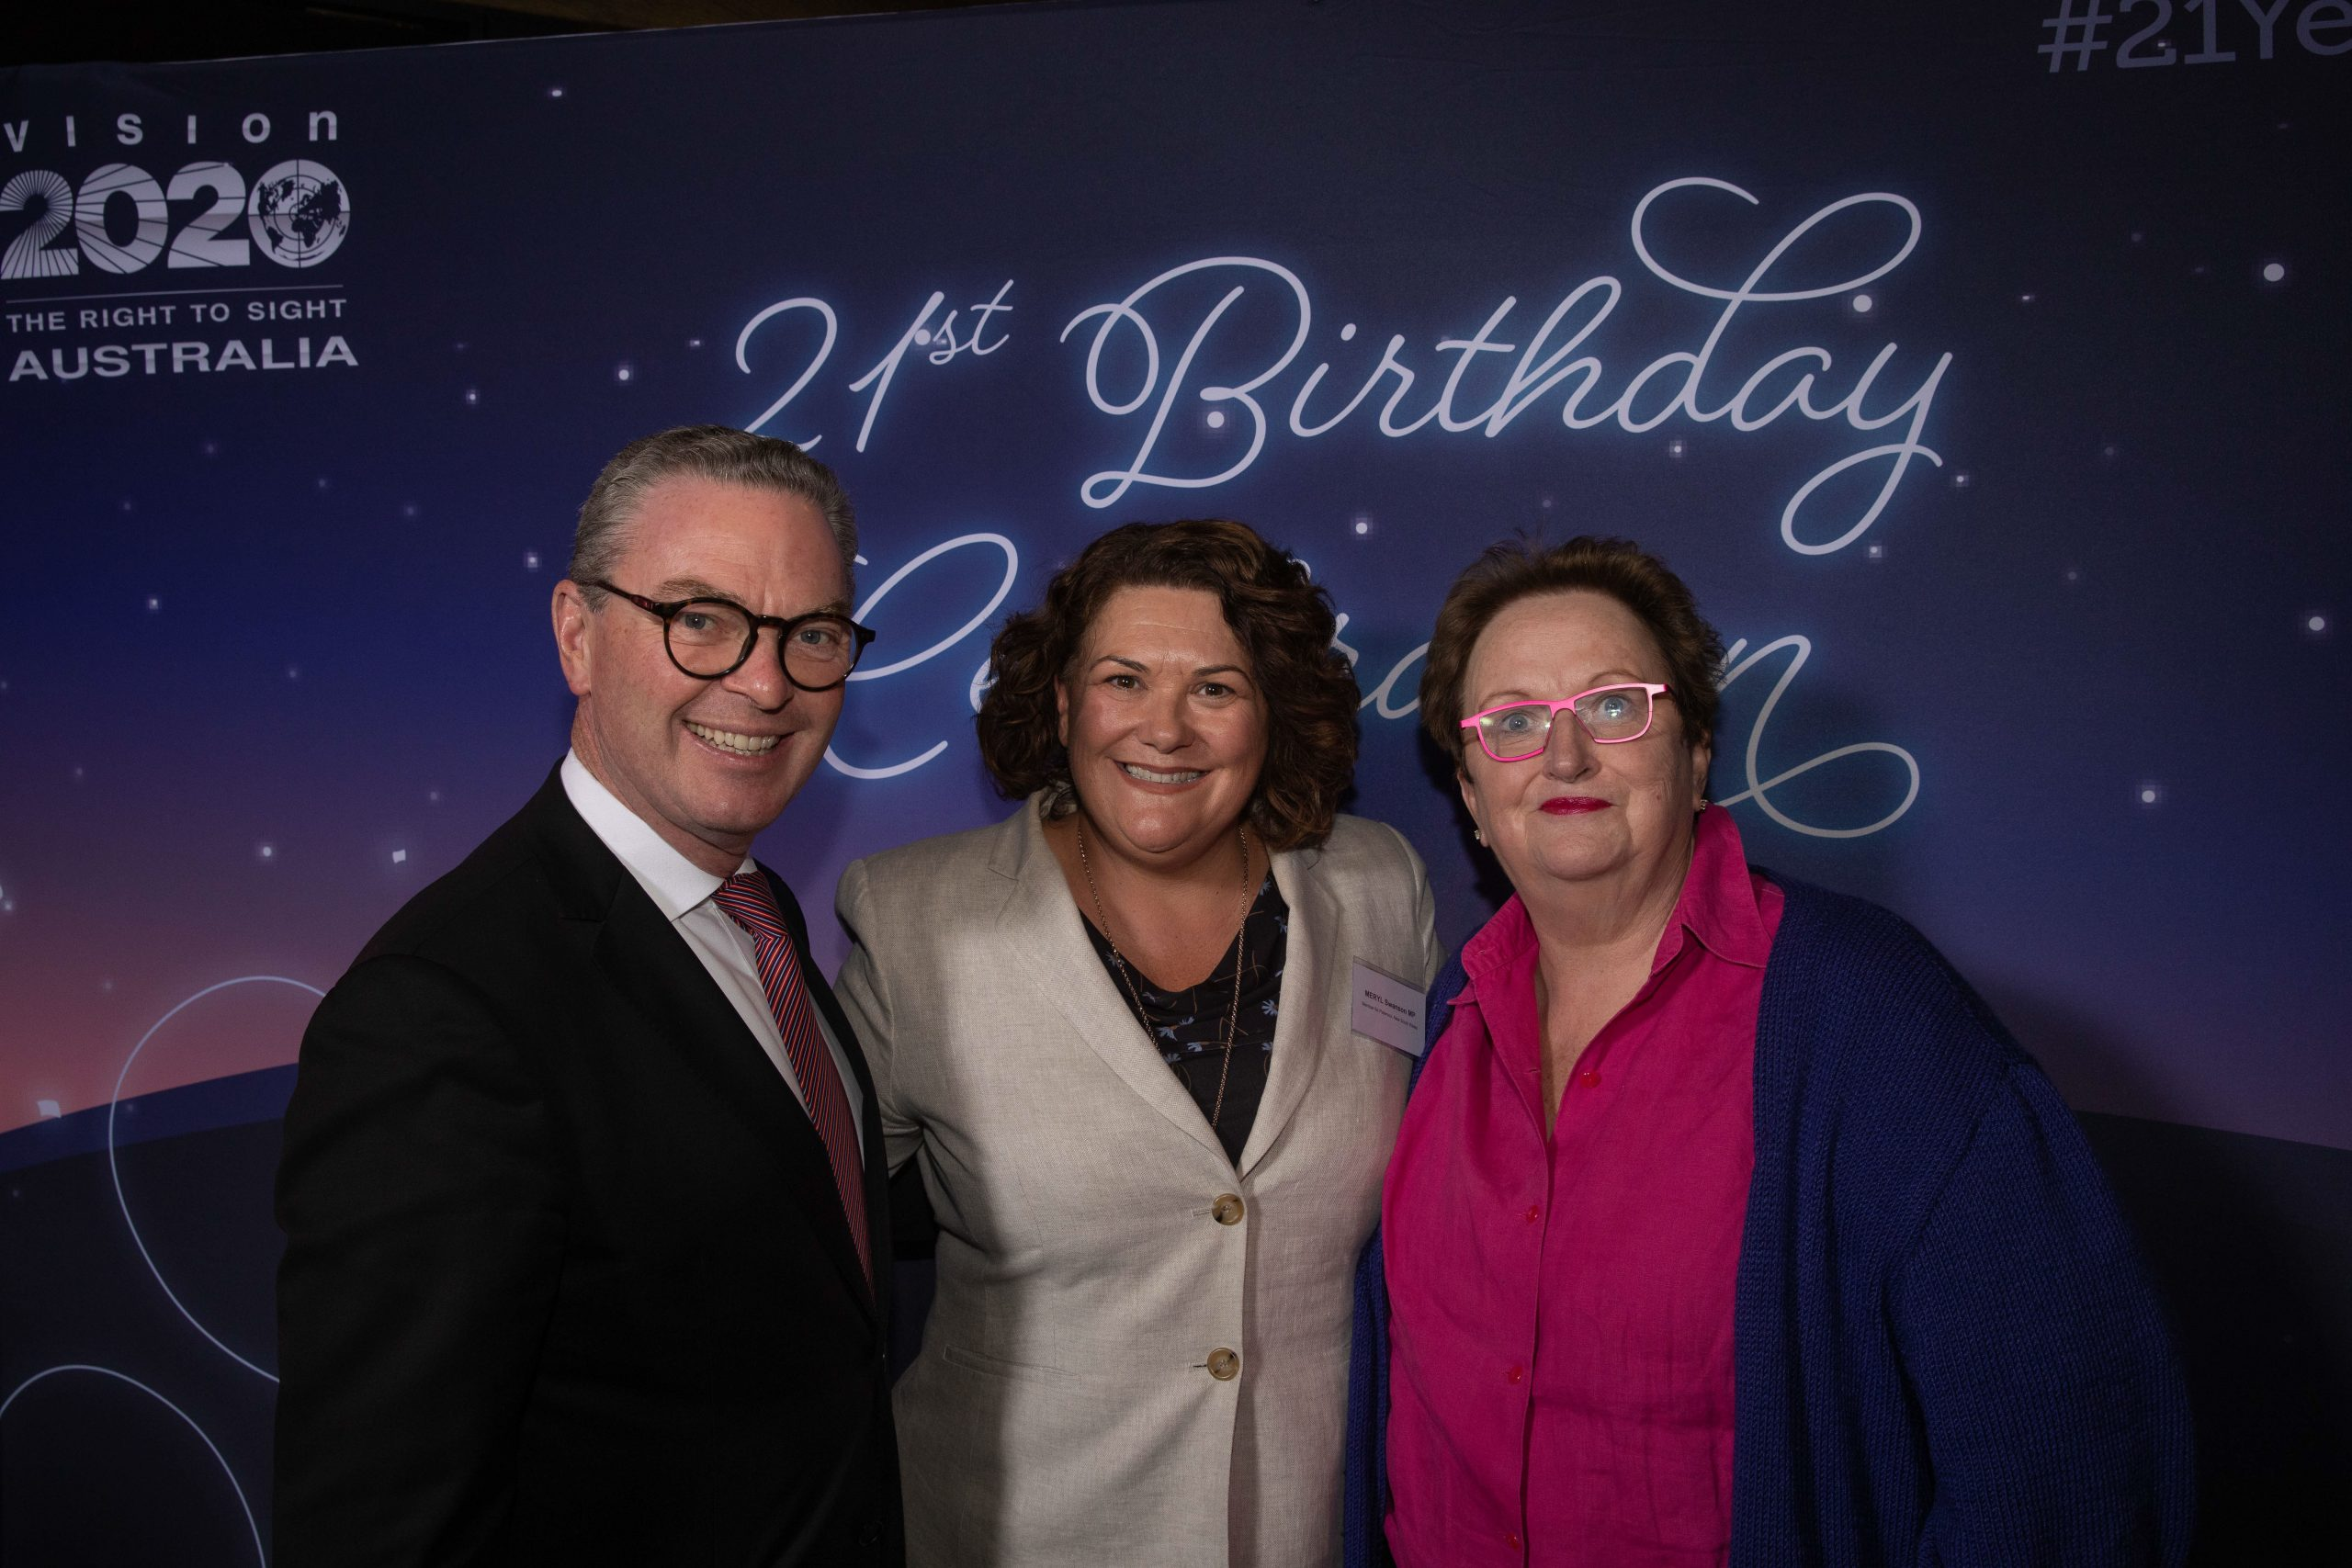 Group of three people at a function